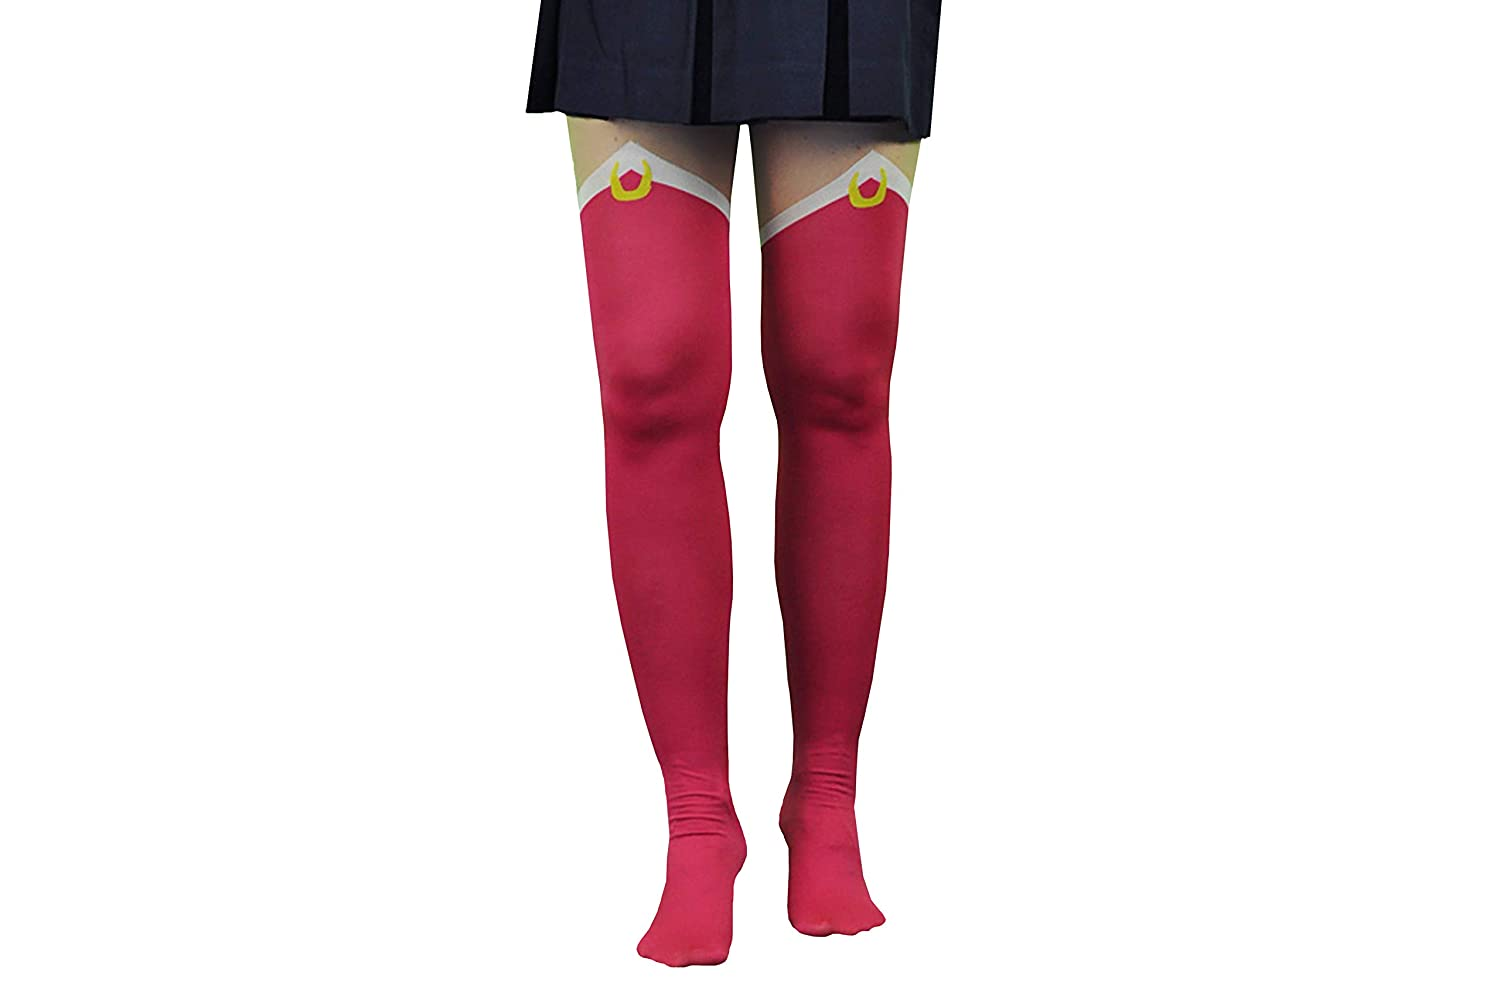 0566b9470b8e4 Amazon.com: Sailor Moon Tights & Socks Women & Girls (2 Pair) - Tights & Over  Knee Socks (S/M) - Sailor Moon Costume: Clothing